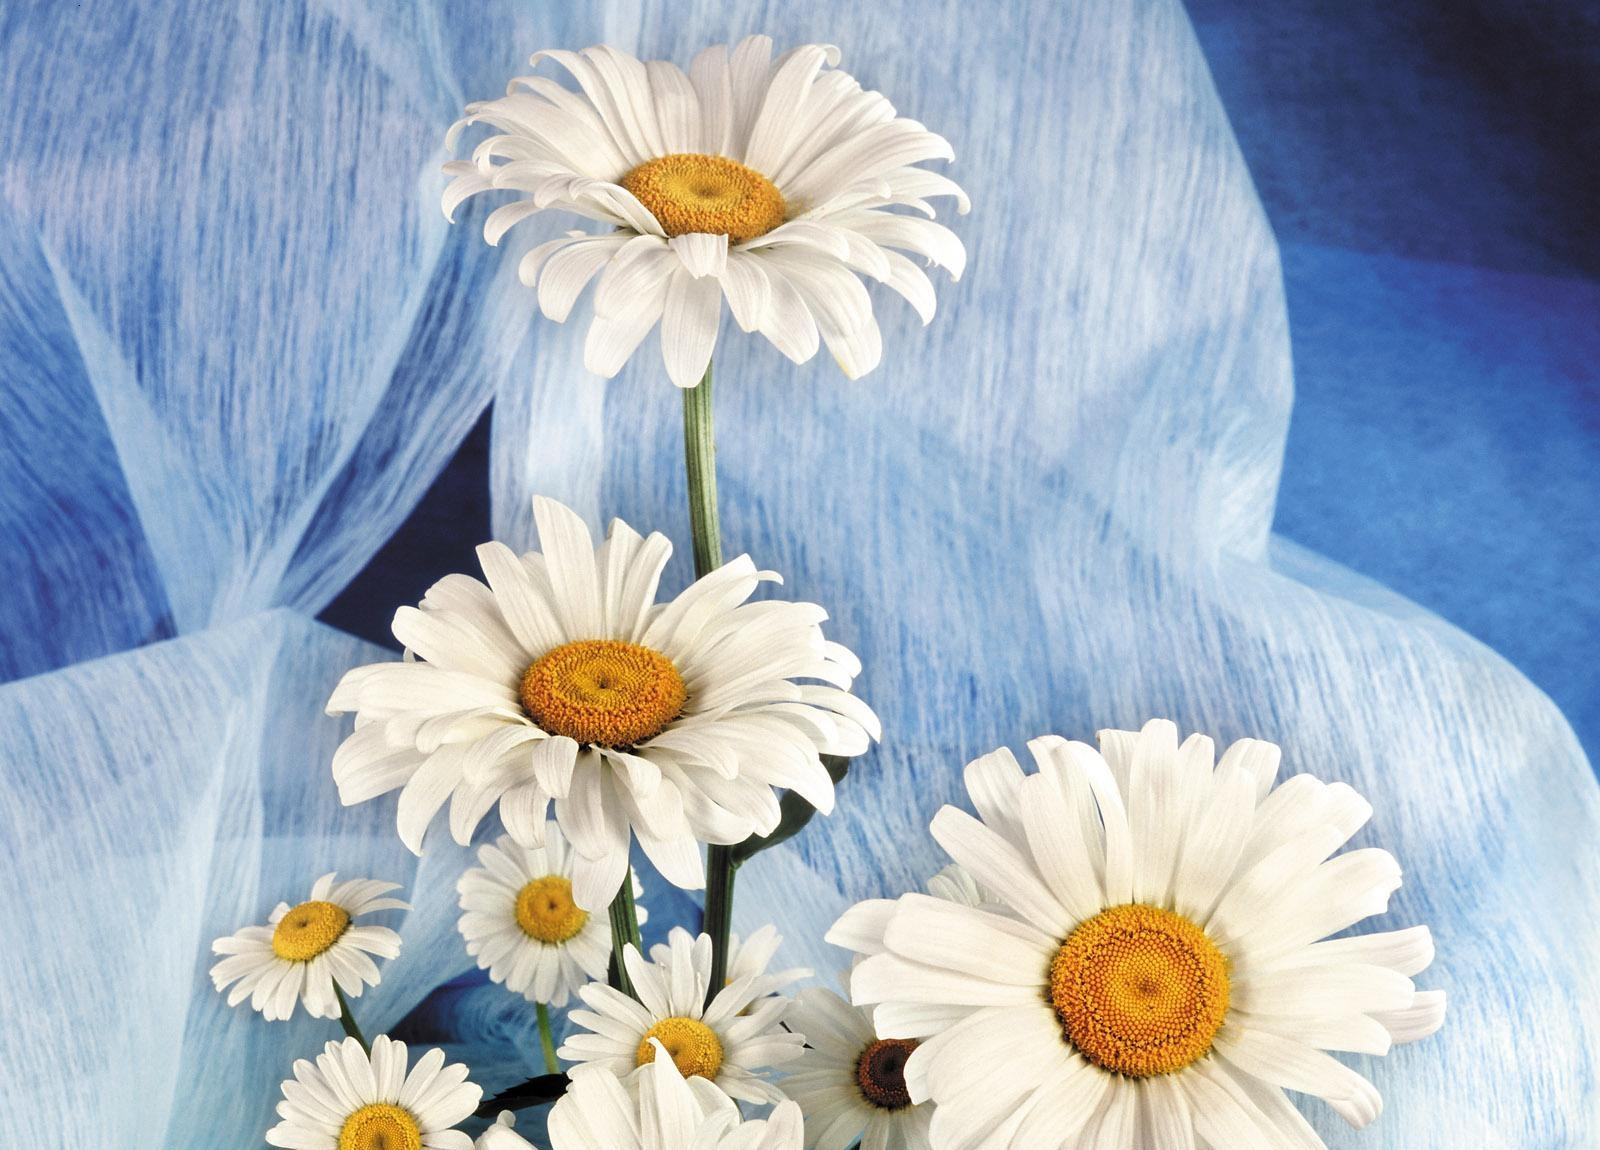 52351 download wallpaper Flowers, Camomile, Bouquet, Snow White screensavers and pictures for free